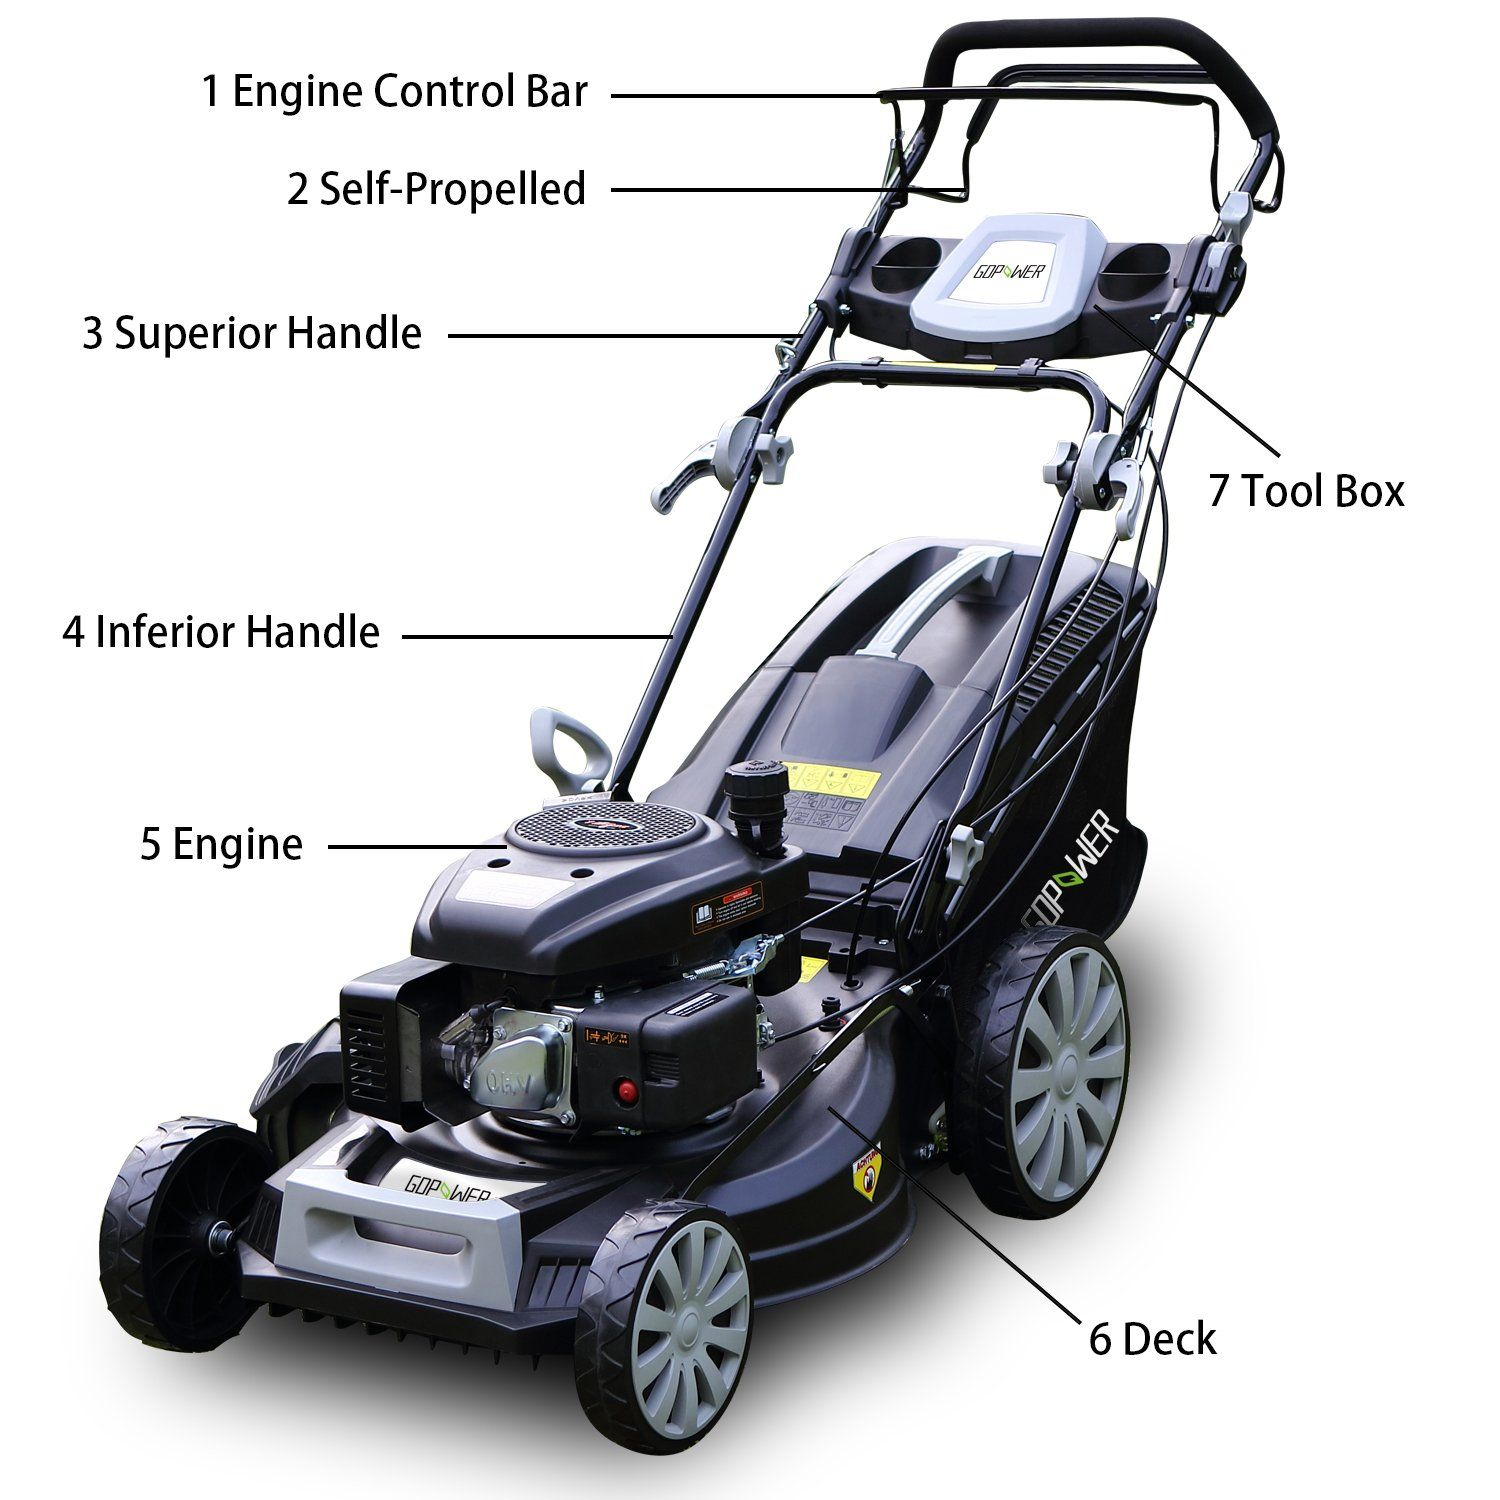 Gdpower 161cc 4in1 Selfpropelled Gas Lawn Mower With 20inch Deck And Recoil Start System Ohv Engine Rear Bag Side Discharge Mulc Lawn Mower Gas Lawn Mower Deck